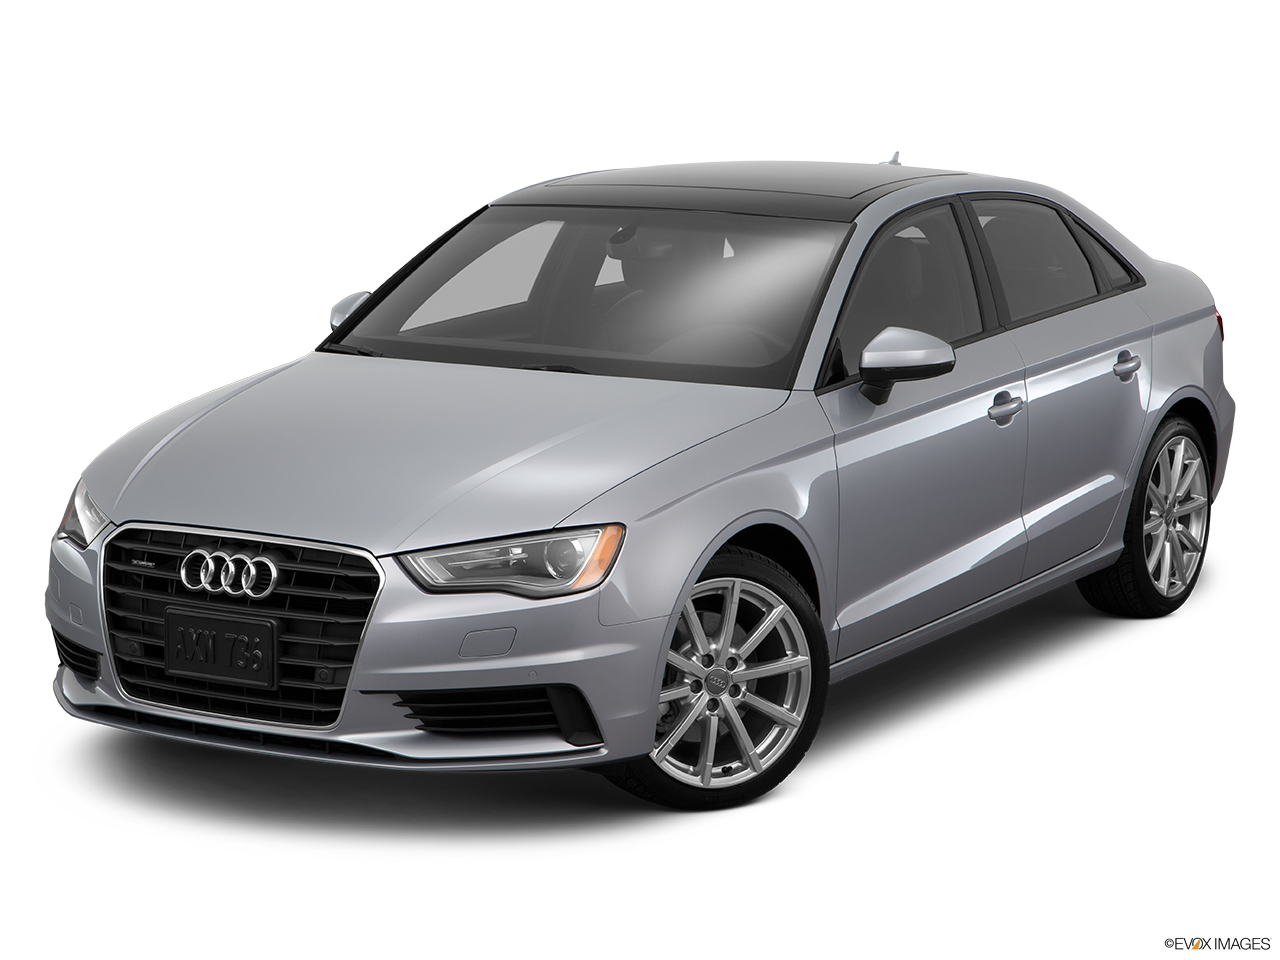 Audi A3 Sedan 2016 Attraction 1.4 122 HP in Kuwait: New Car Prices, Specs, Reviews & Photos ...